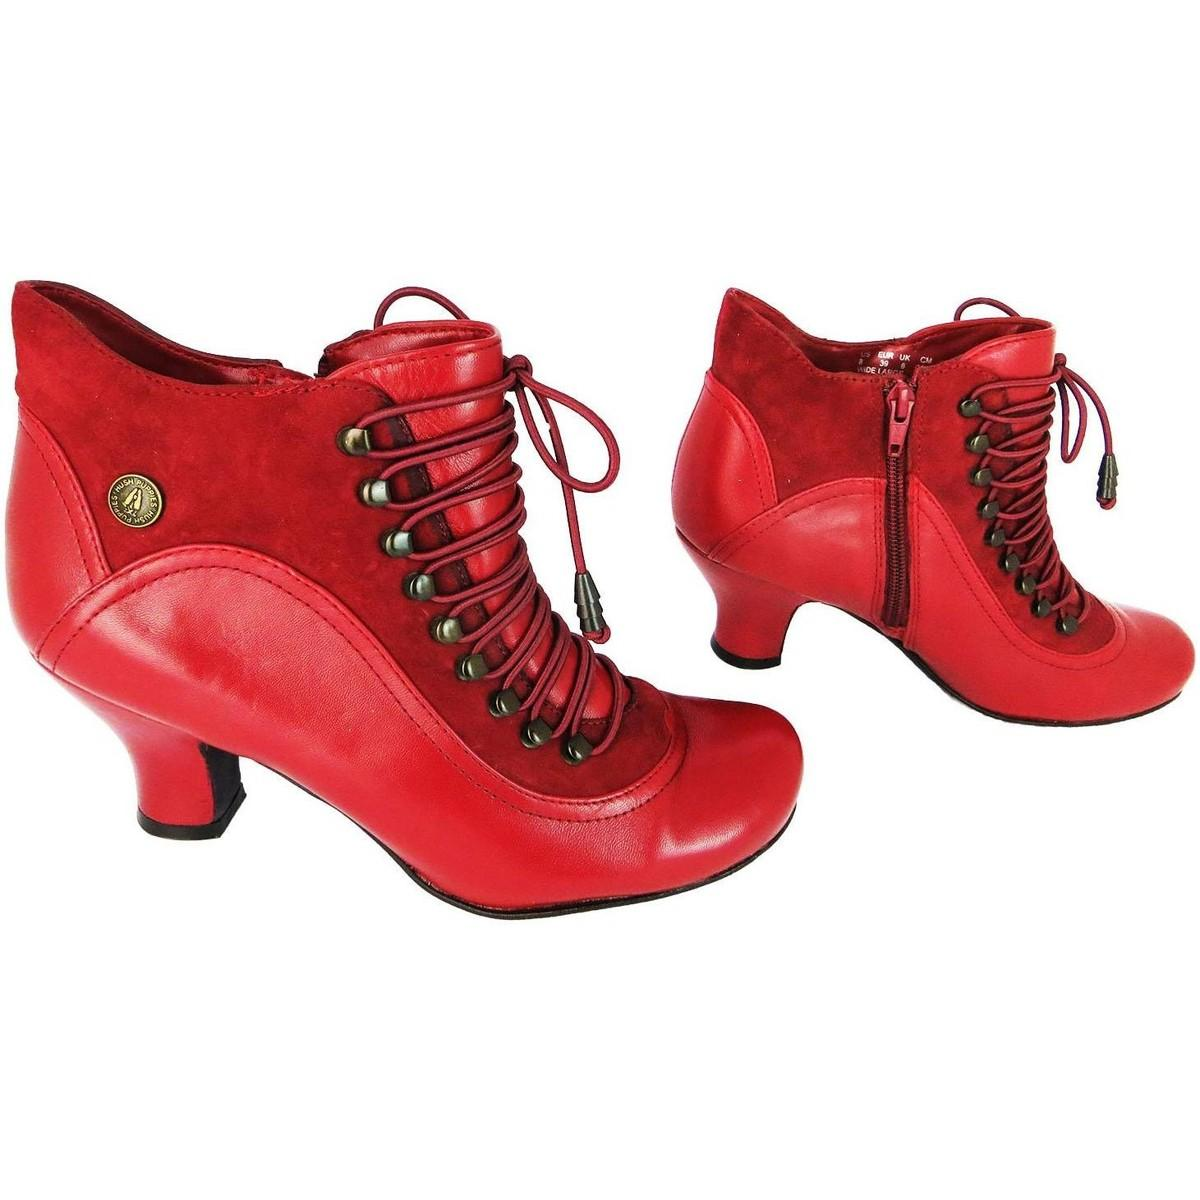 Hush Puppies Leather Vivianna Women's Low Ankle Boots In Red